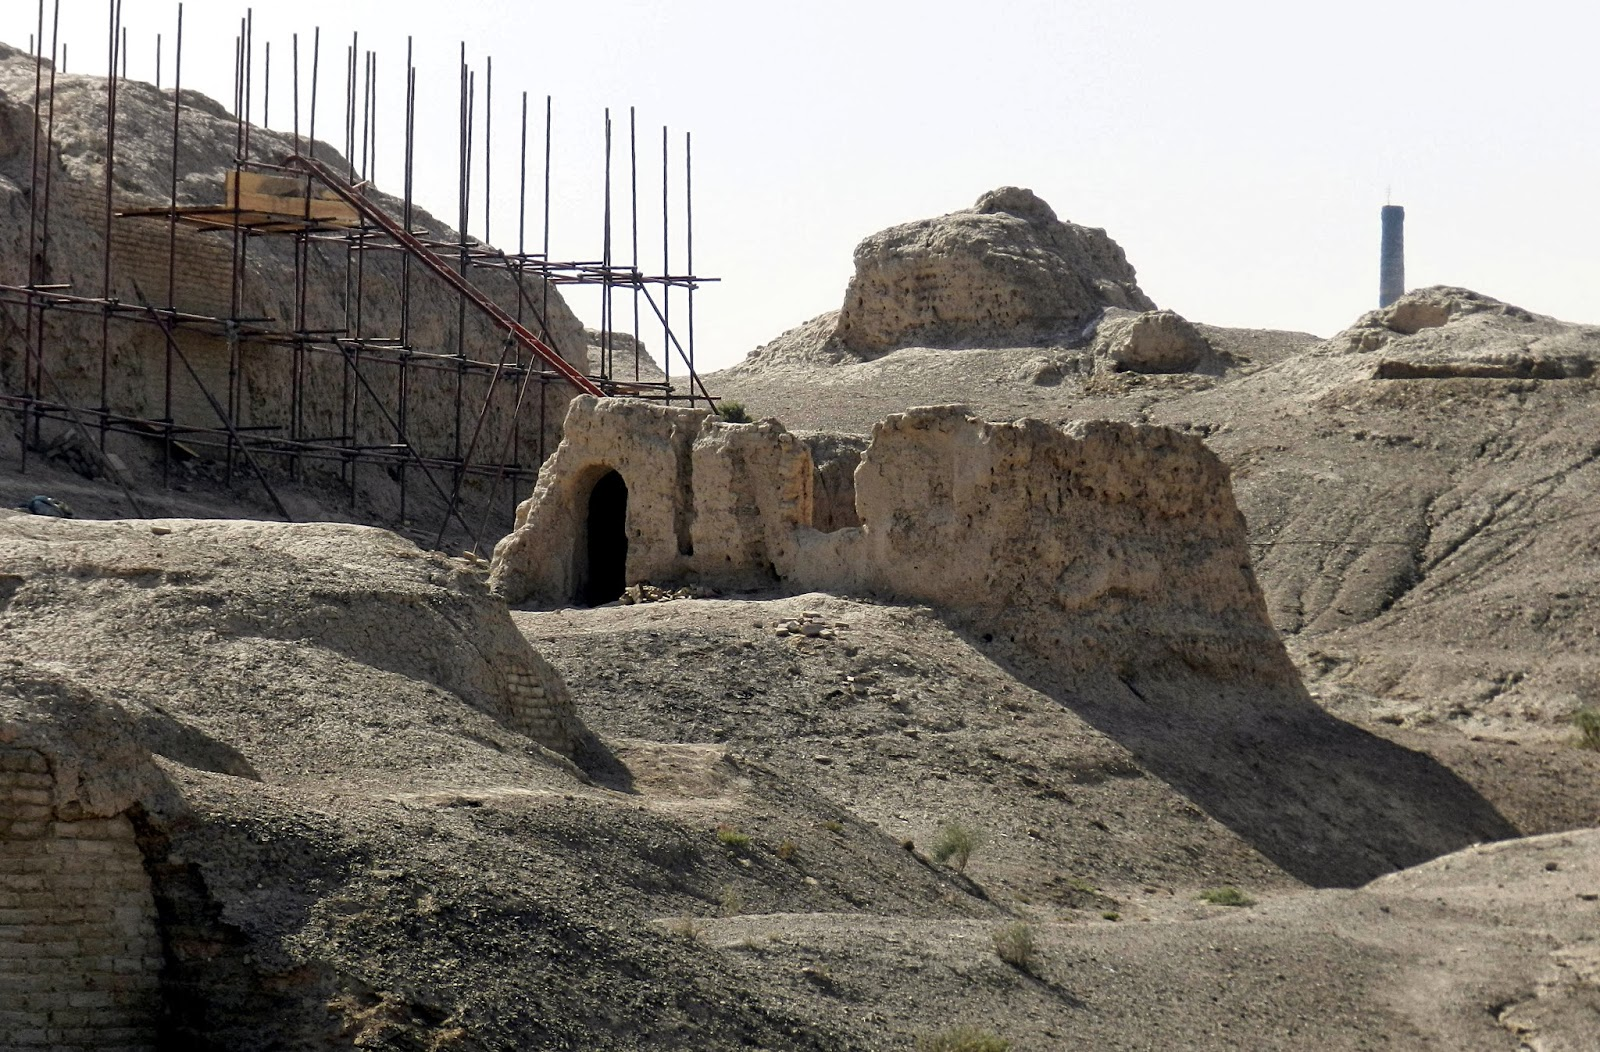 Qigexing Temple ruins along silk road reveal Buddhism's past in China